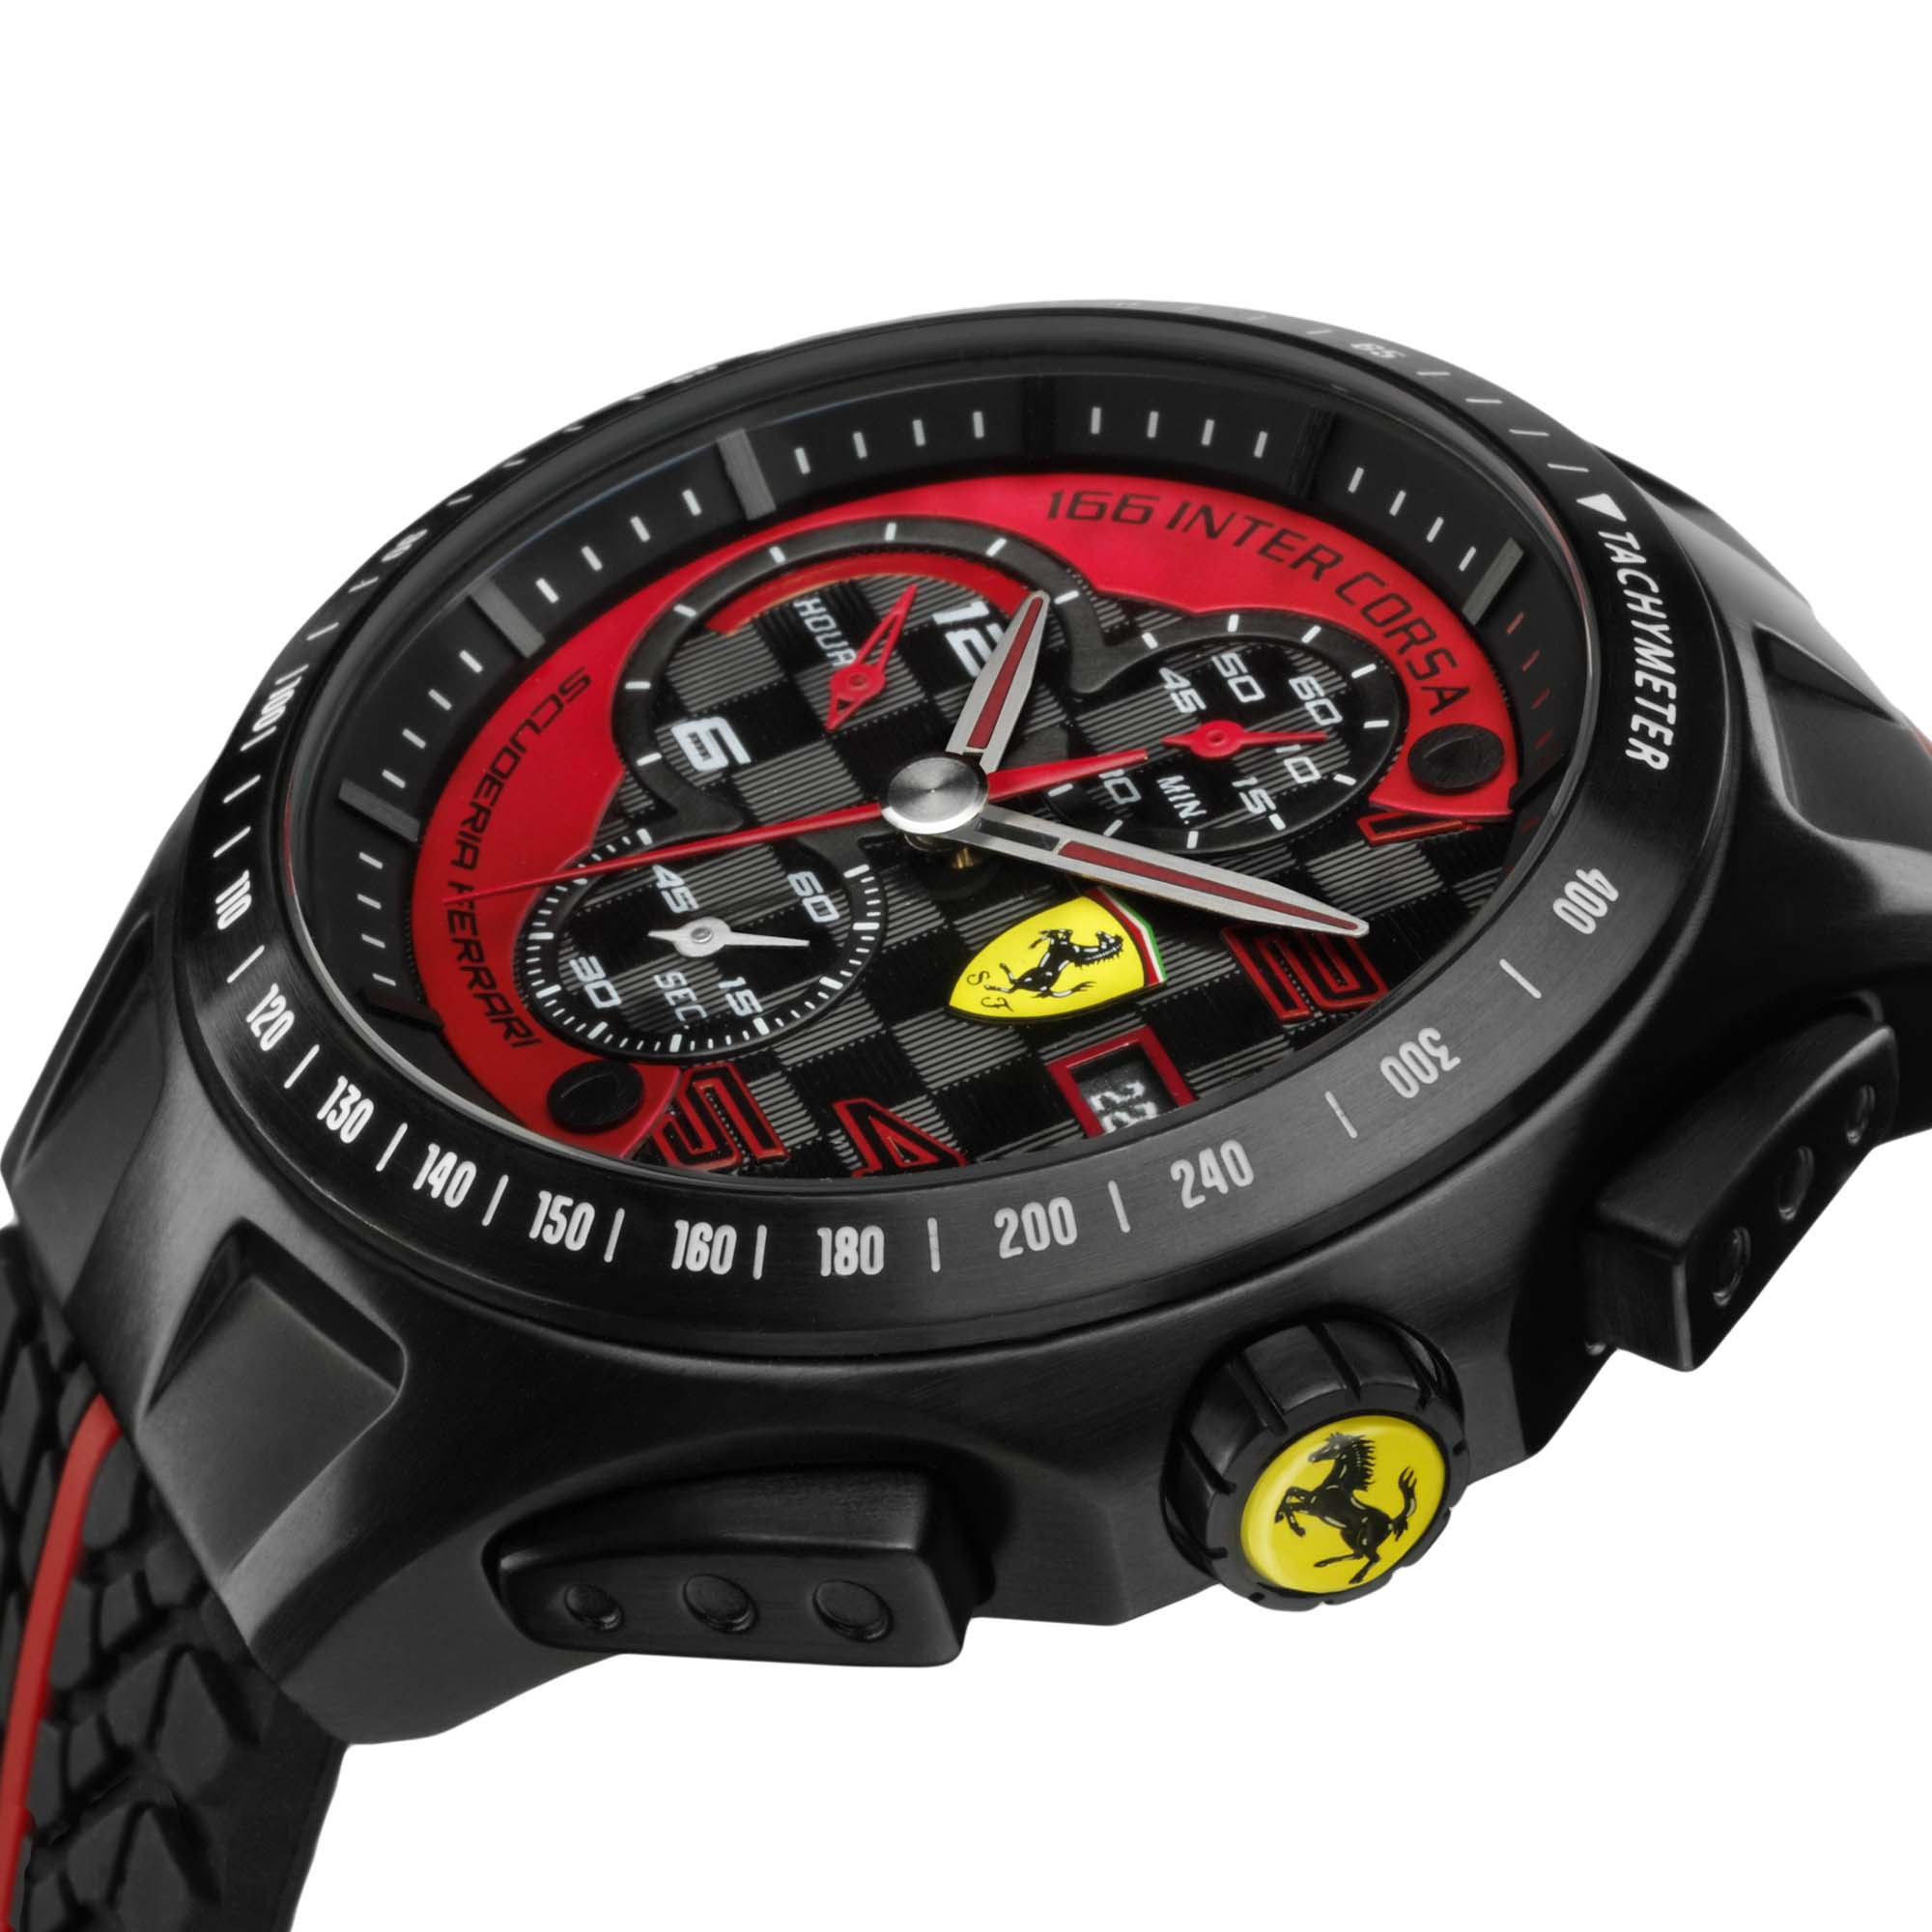 Replica Ferrari Watch With Red Colored Dial Best Swiss Breitling Replica Watches Show